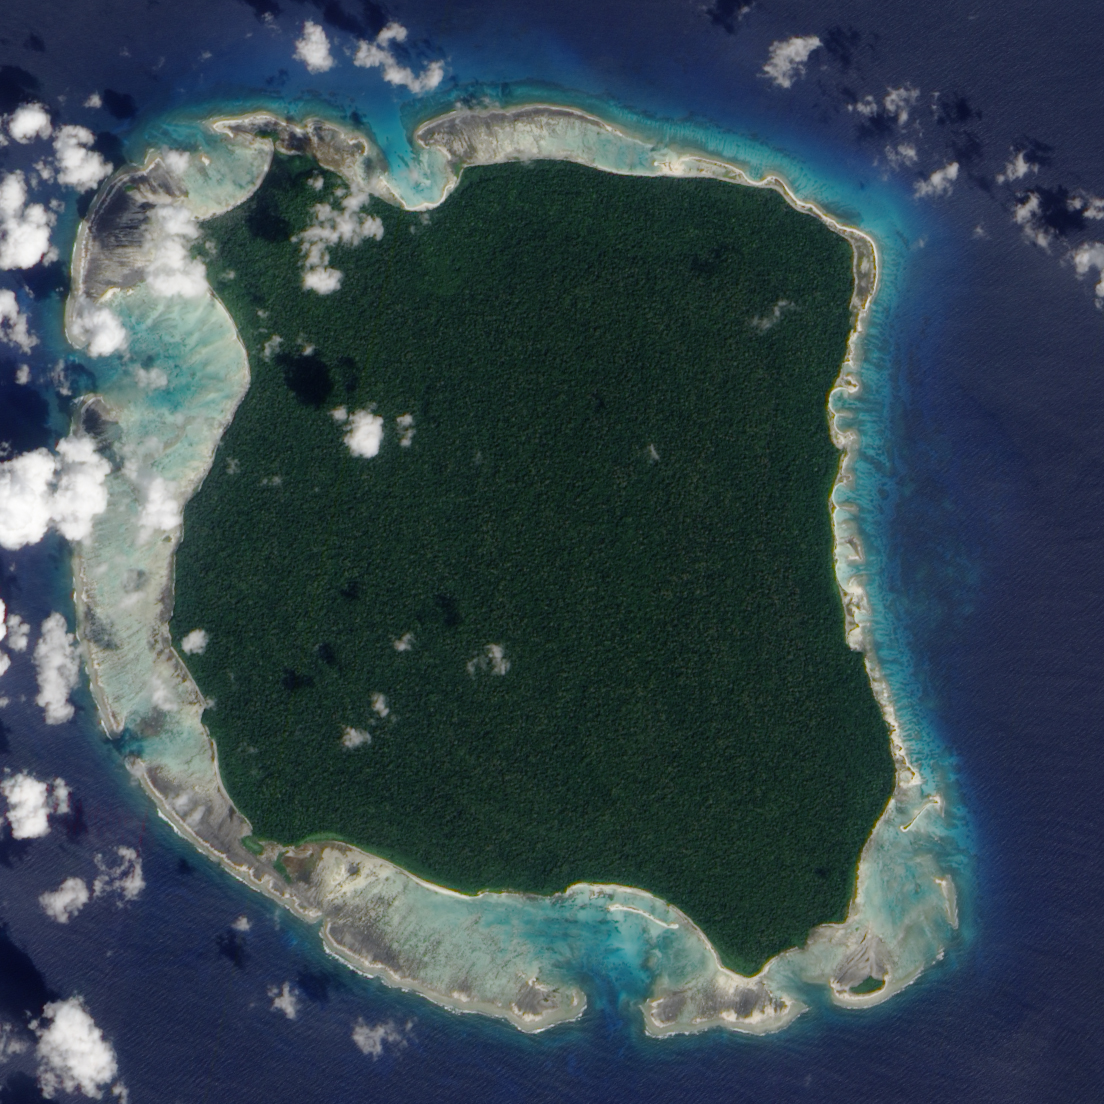 The Indian government monitors the Andaman Islands territories, including North Sentinel Island (pictured), home to the Sentinelese tribe, one of the last hunter-gatherer tribes that has little to no contact with outside populations.